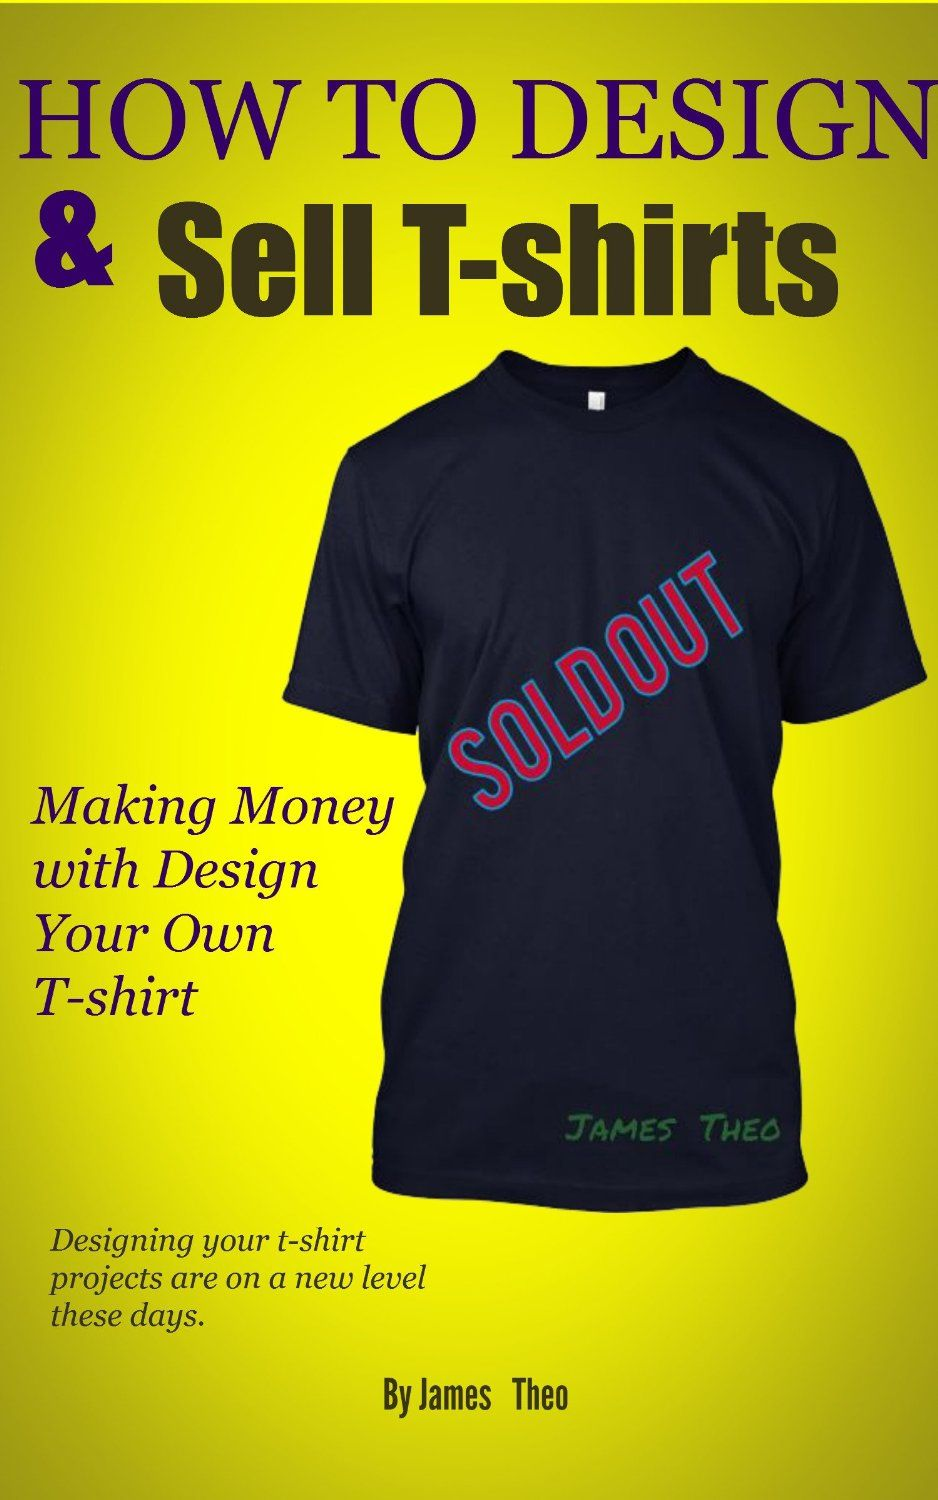 Design your own t-shirt maker - How To Design And Sell T Shirts Making Money With Design Your Own T